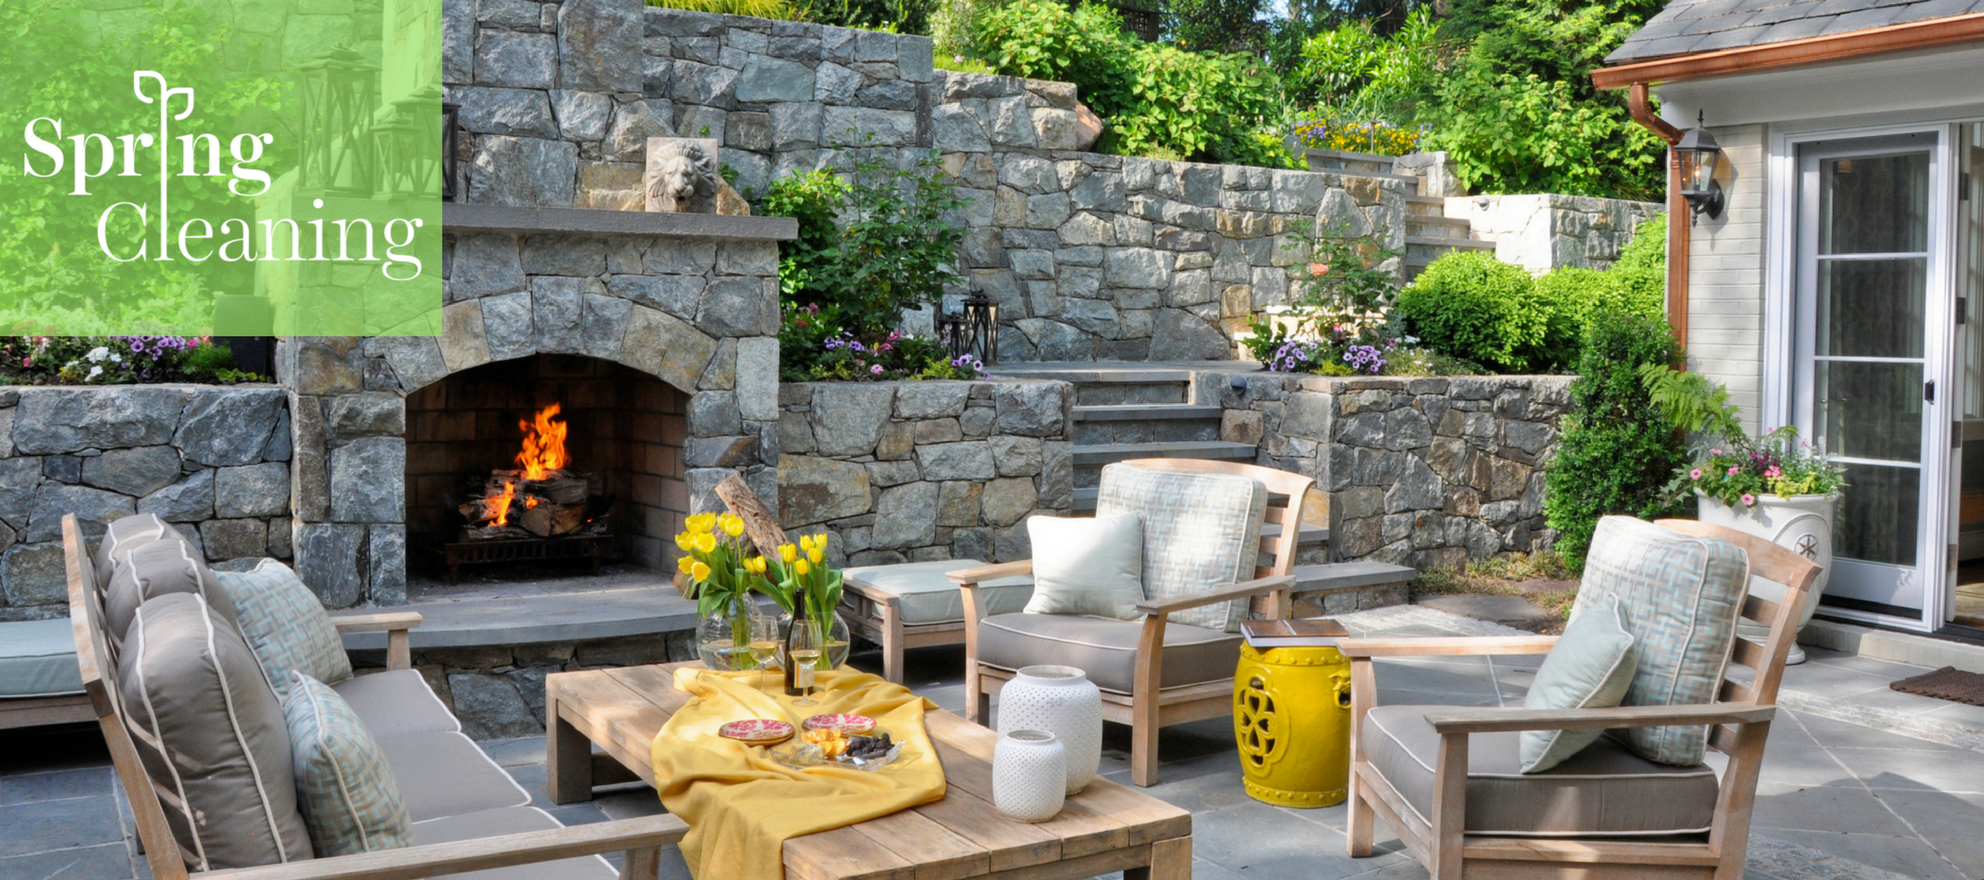 for tables patios furniture ideas backyard patio the and home houzz